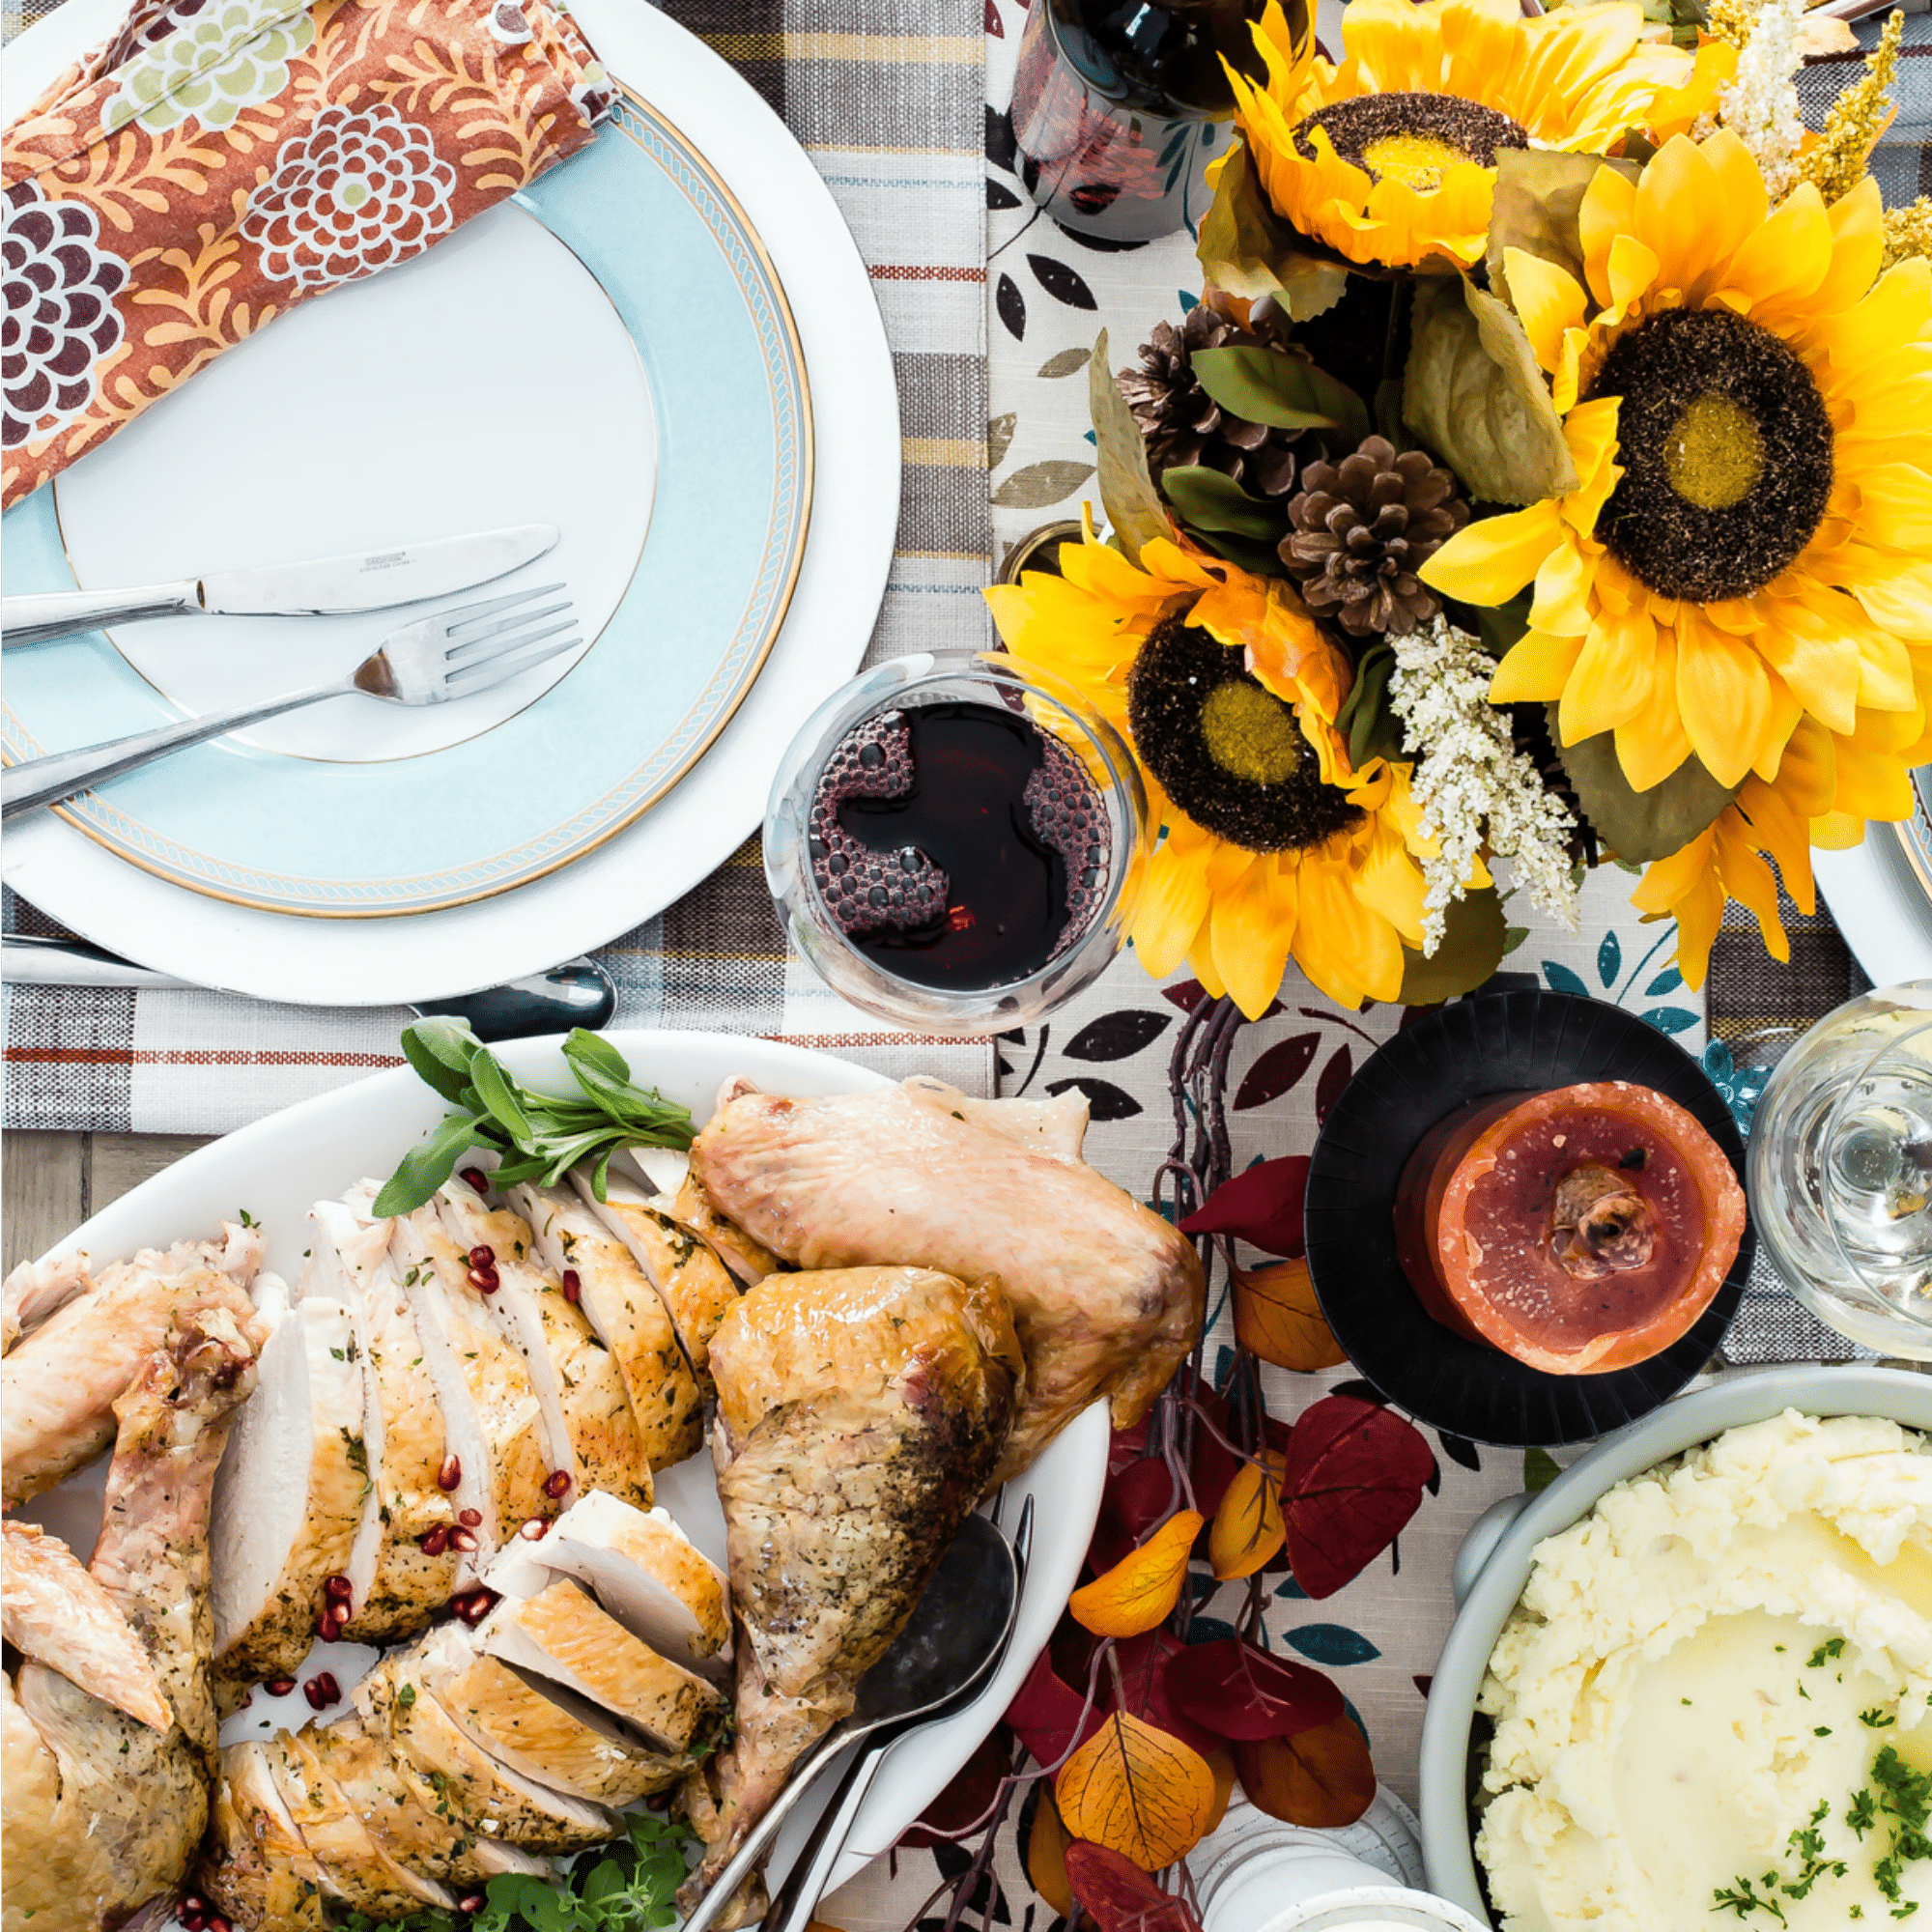 The most important feast of the year just got easier with my menu for a complete make-ahead Thanksgiving. I included all the tips, tricks, and advice to make your holiday smooth sailing, at least when it comes to the food...I can't guarantee everyone will arrive on time.